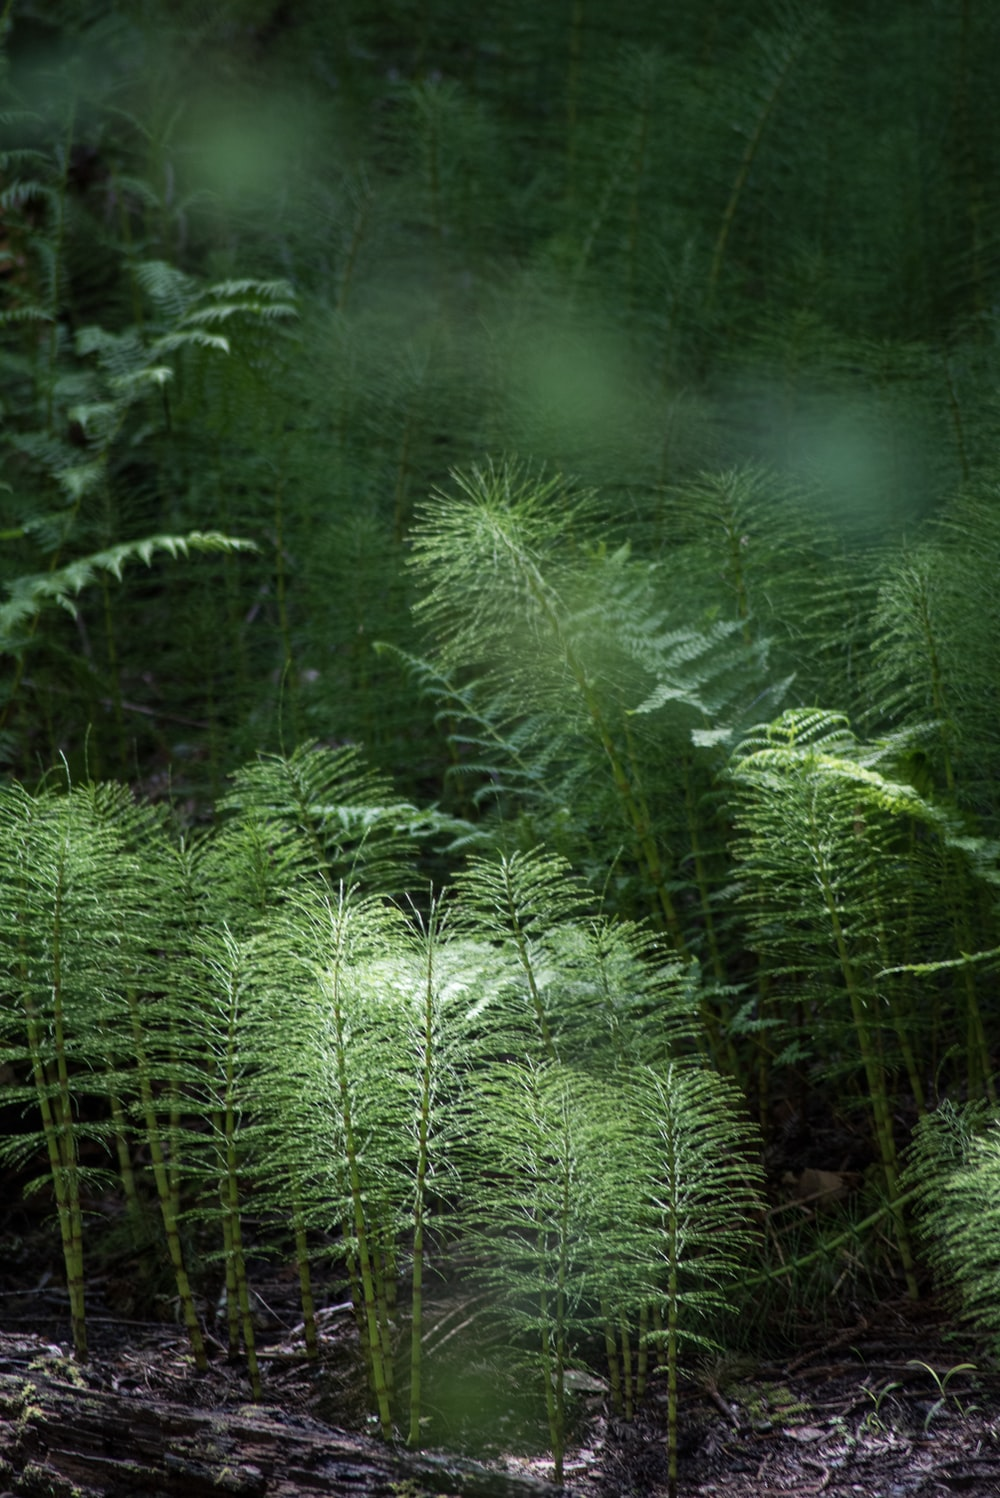 green fern plant during daytime